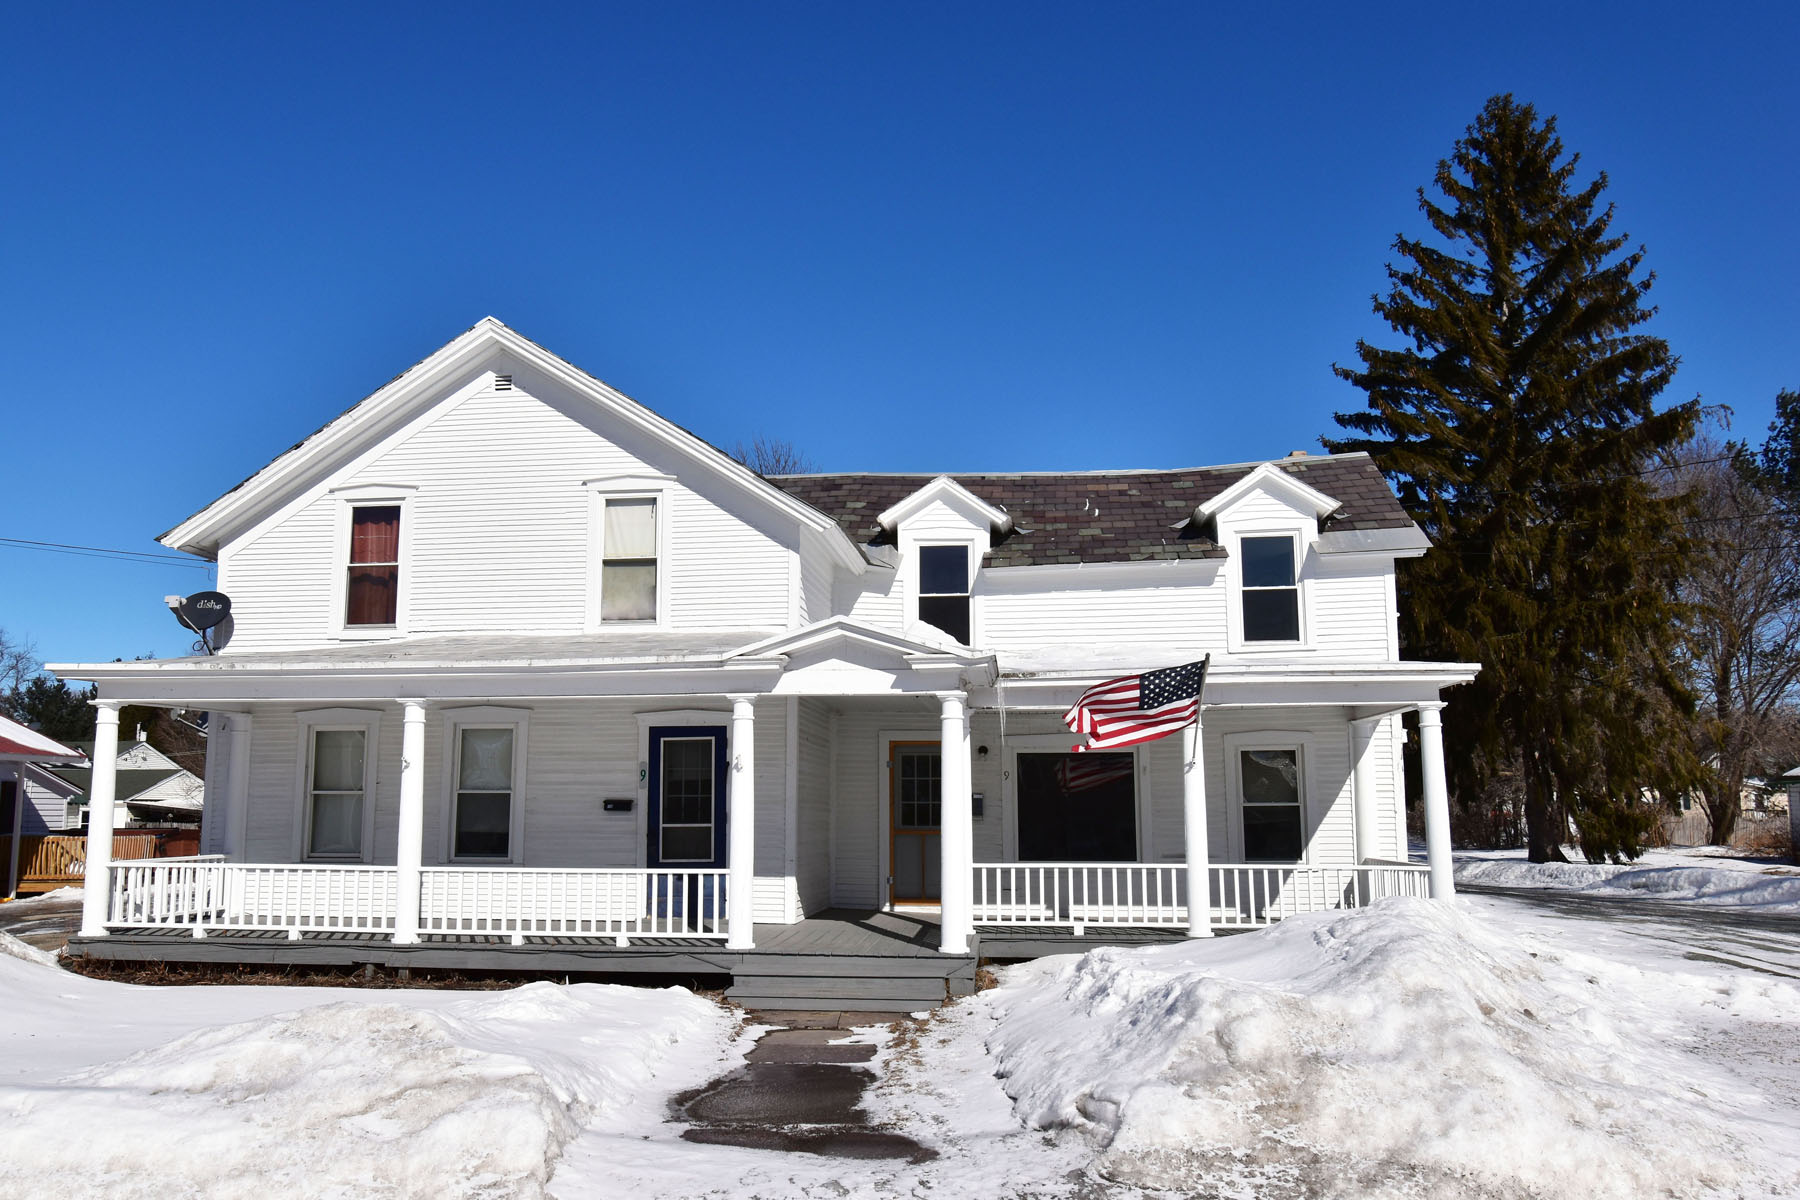 Multi-Family Home for Sale at Fair Haven - Multifamily 9 Second St Fair Haven, Vermont 05743 United States